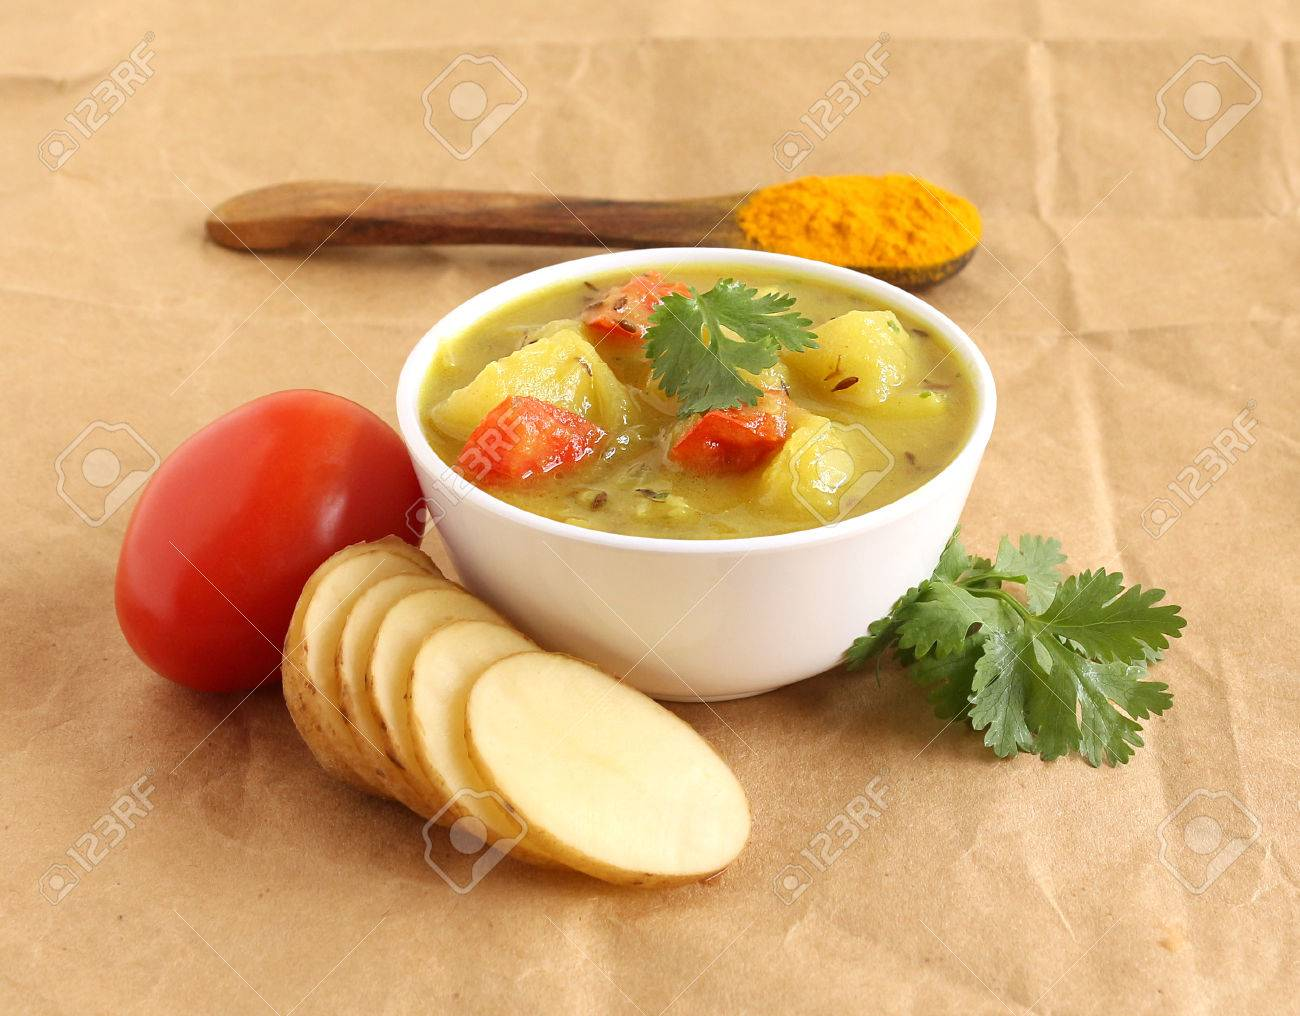 Aloo Sabzi Or Potato Curry Is An Indian Vegetarian Side Dish